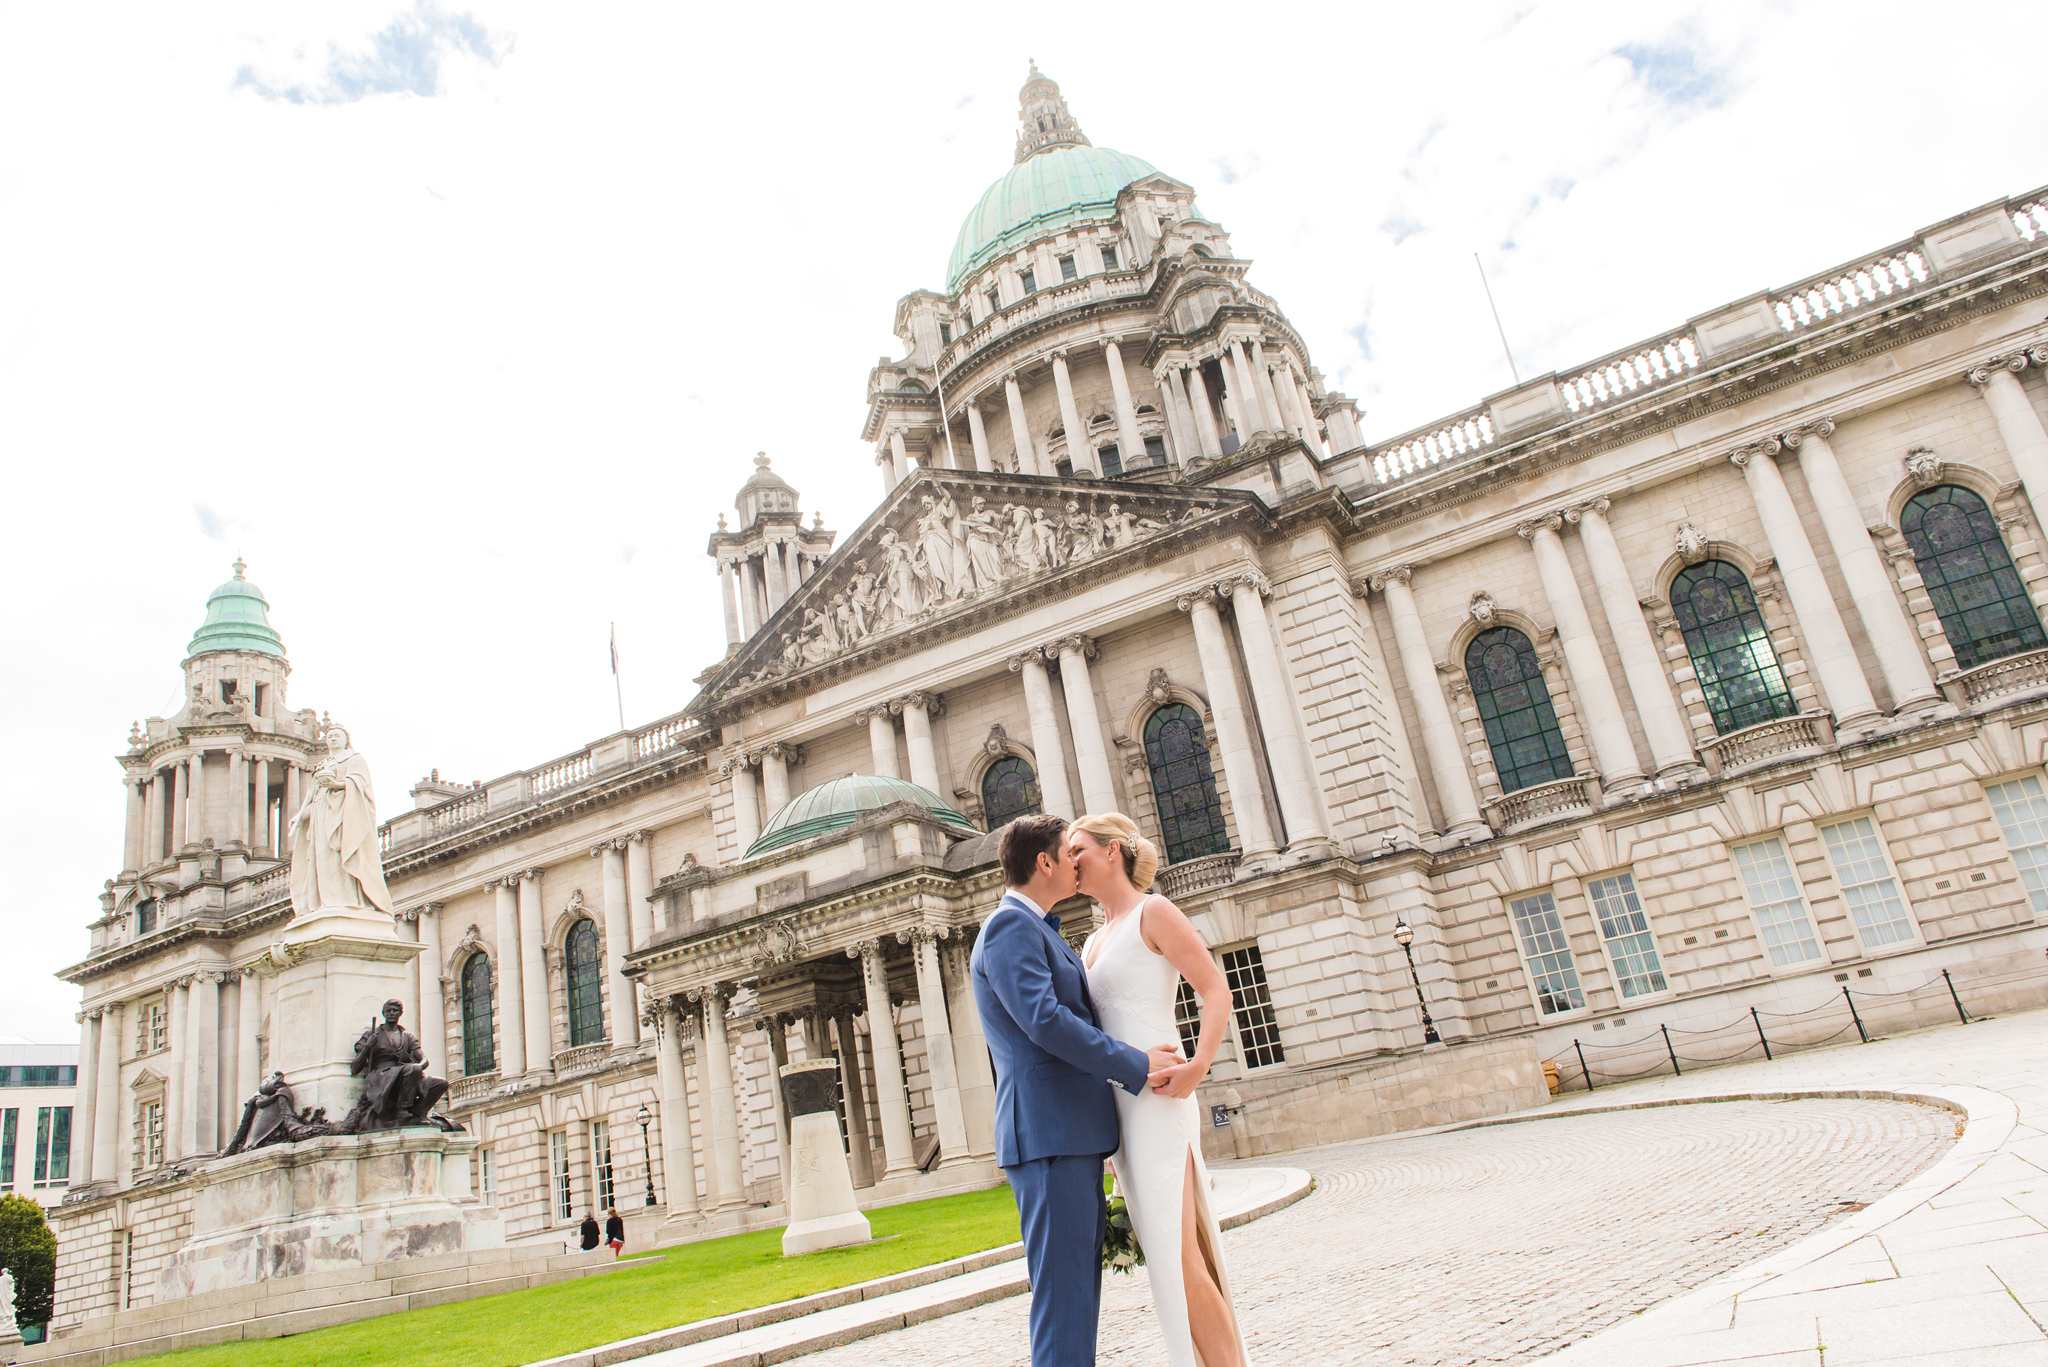 Karla and Gavin City Hall Belfast Culloden EstateCollette O'Neill Collette Creative Photography Belfast Northern Ireland